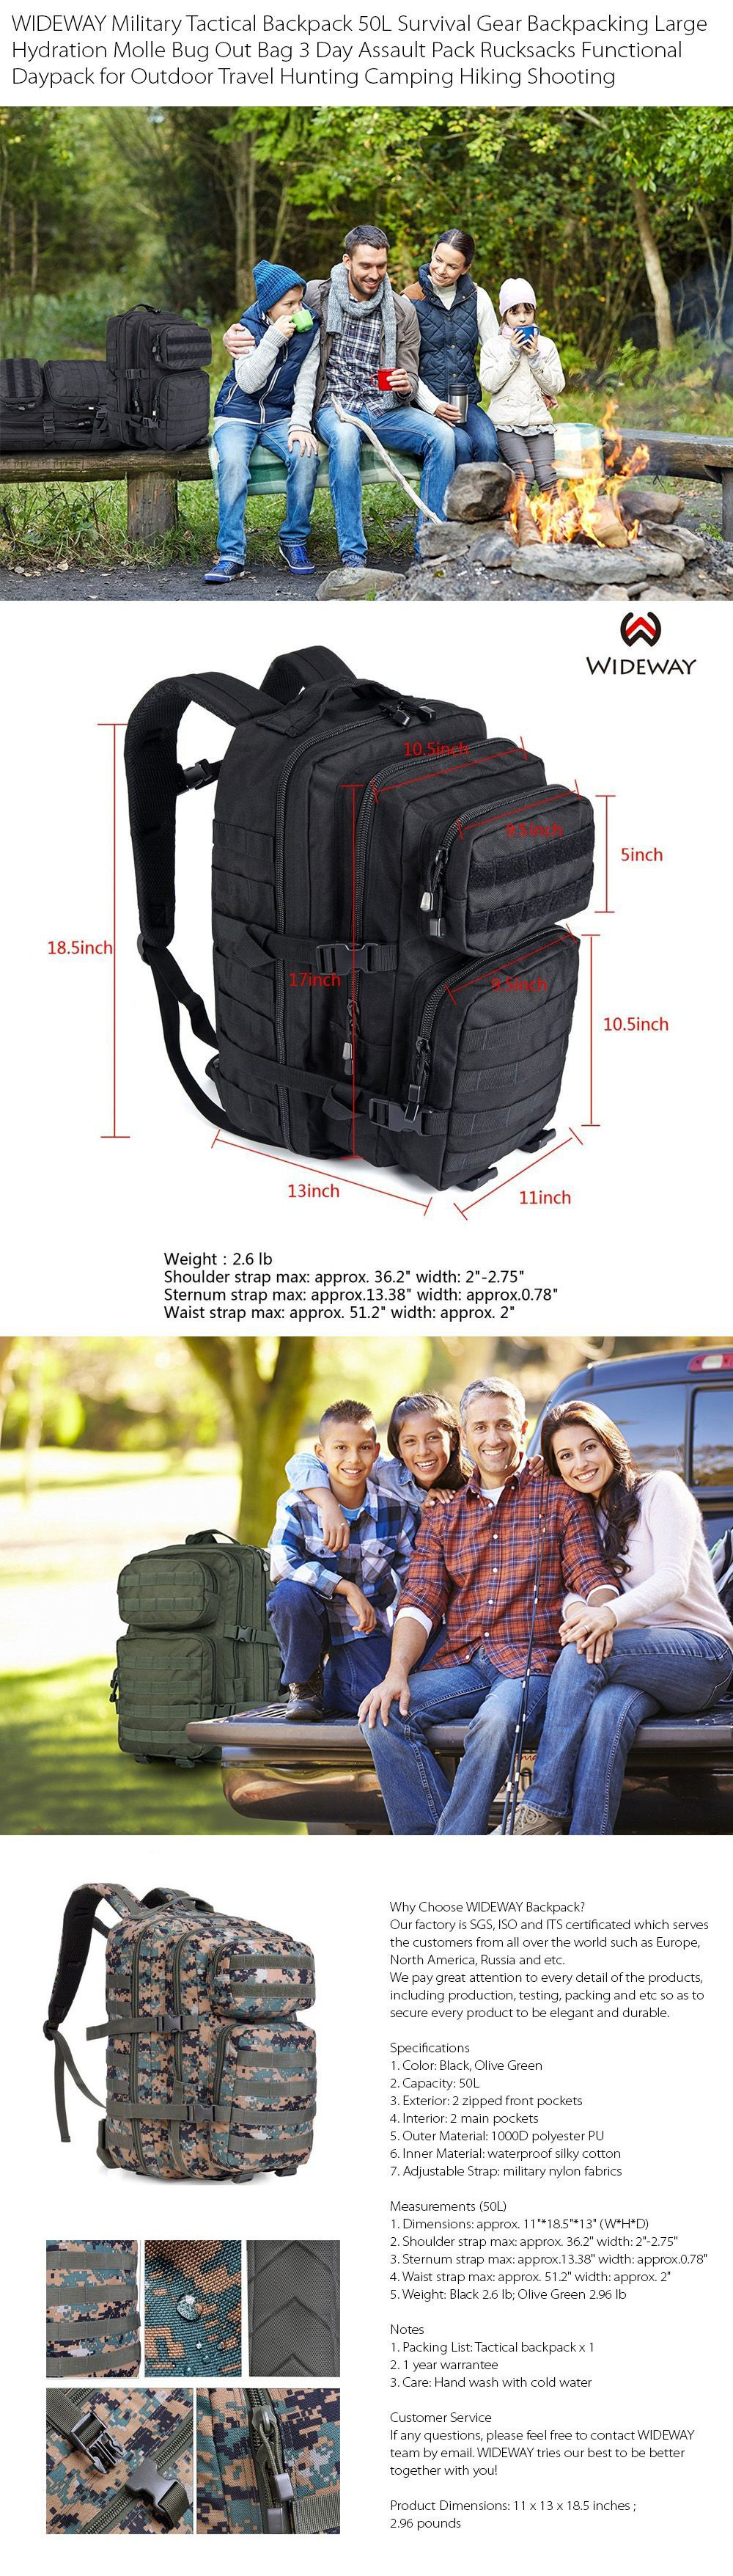 WIDEWAY Tactical Survival Backpack 3 Day Pack